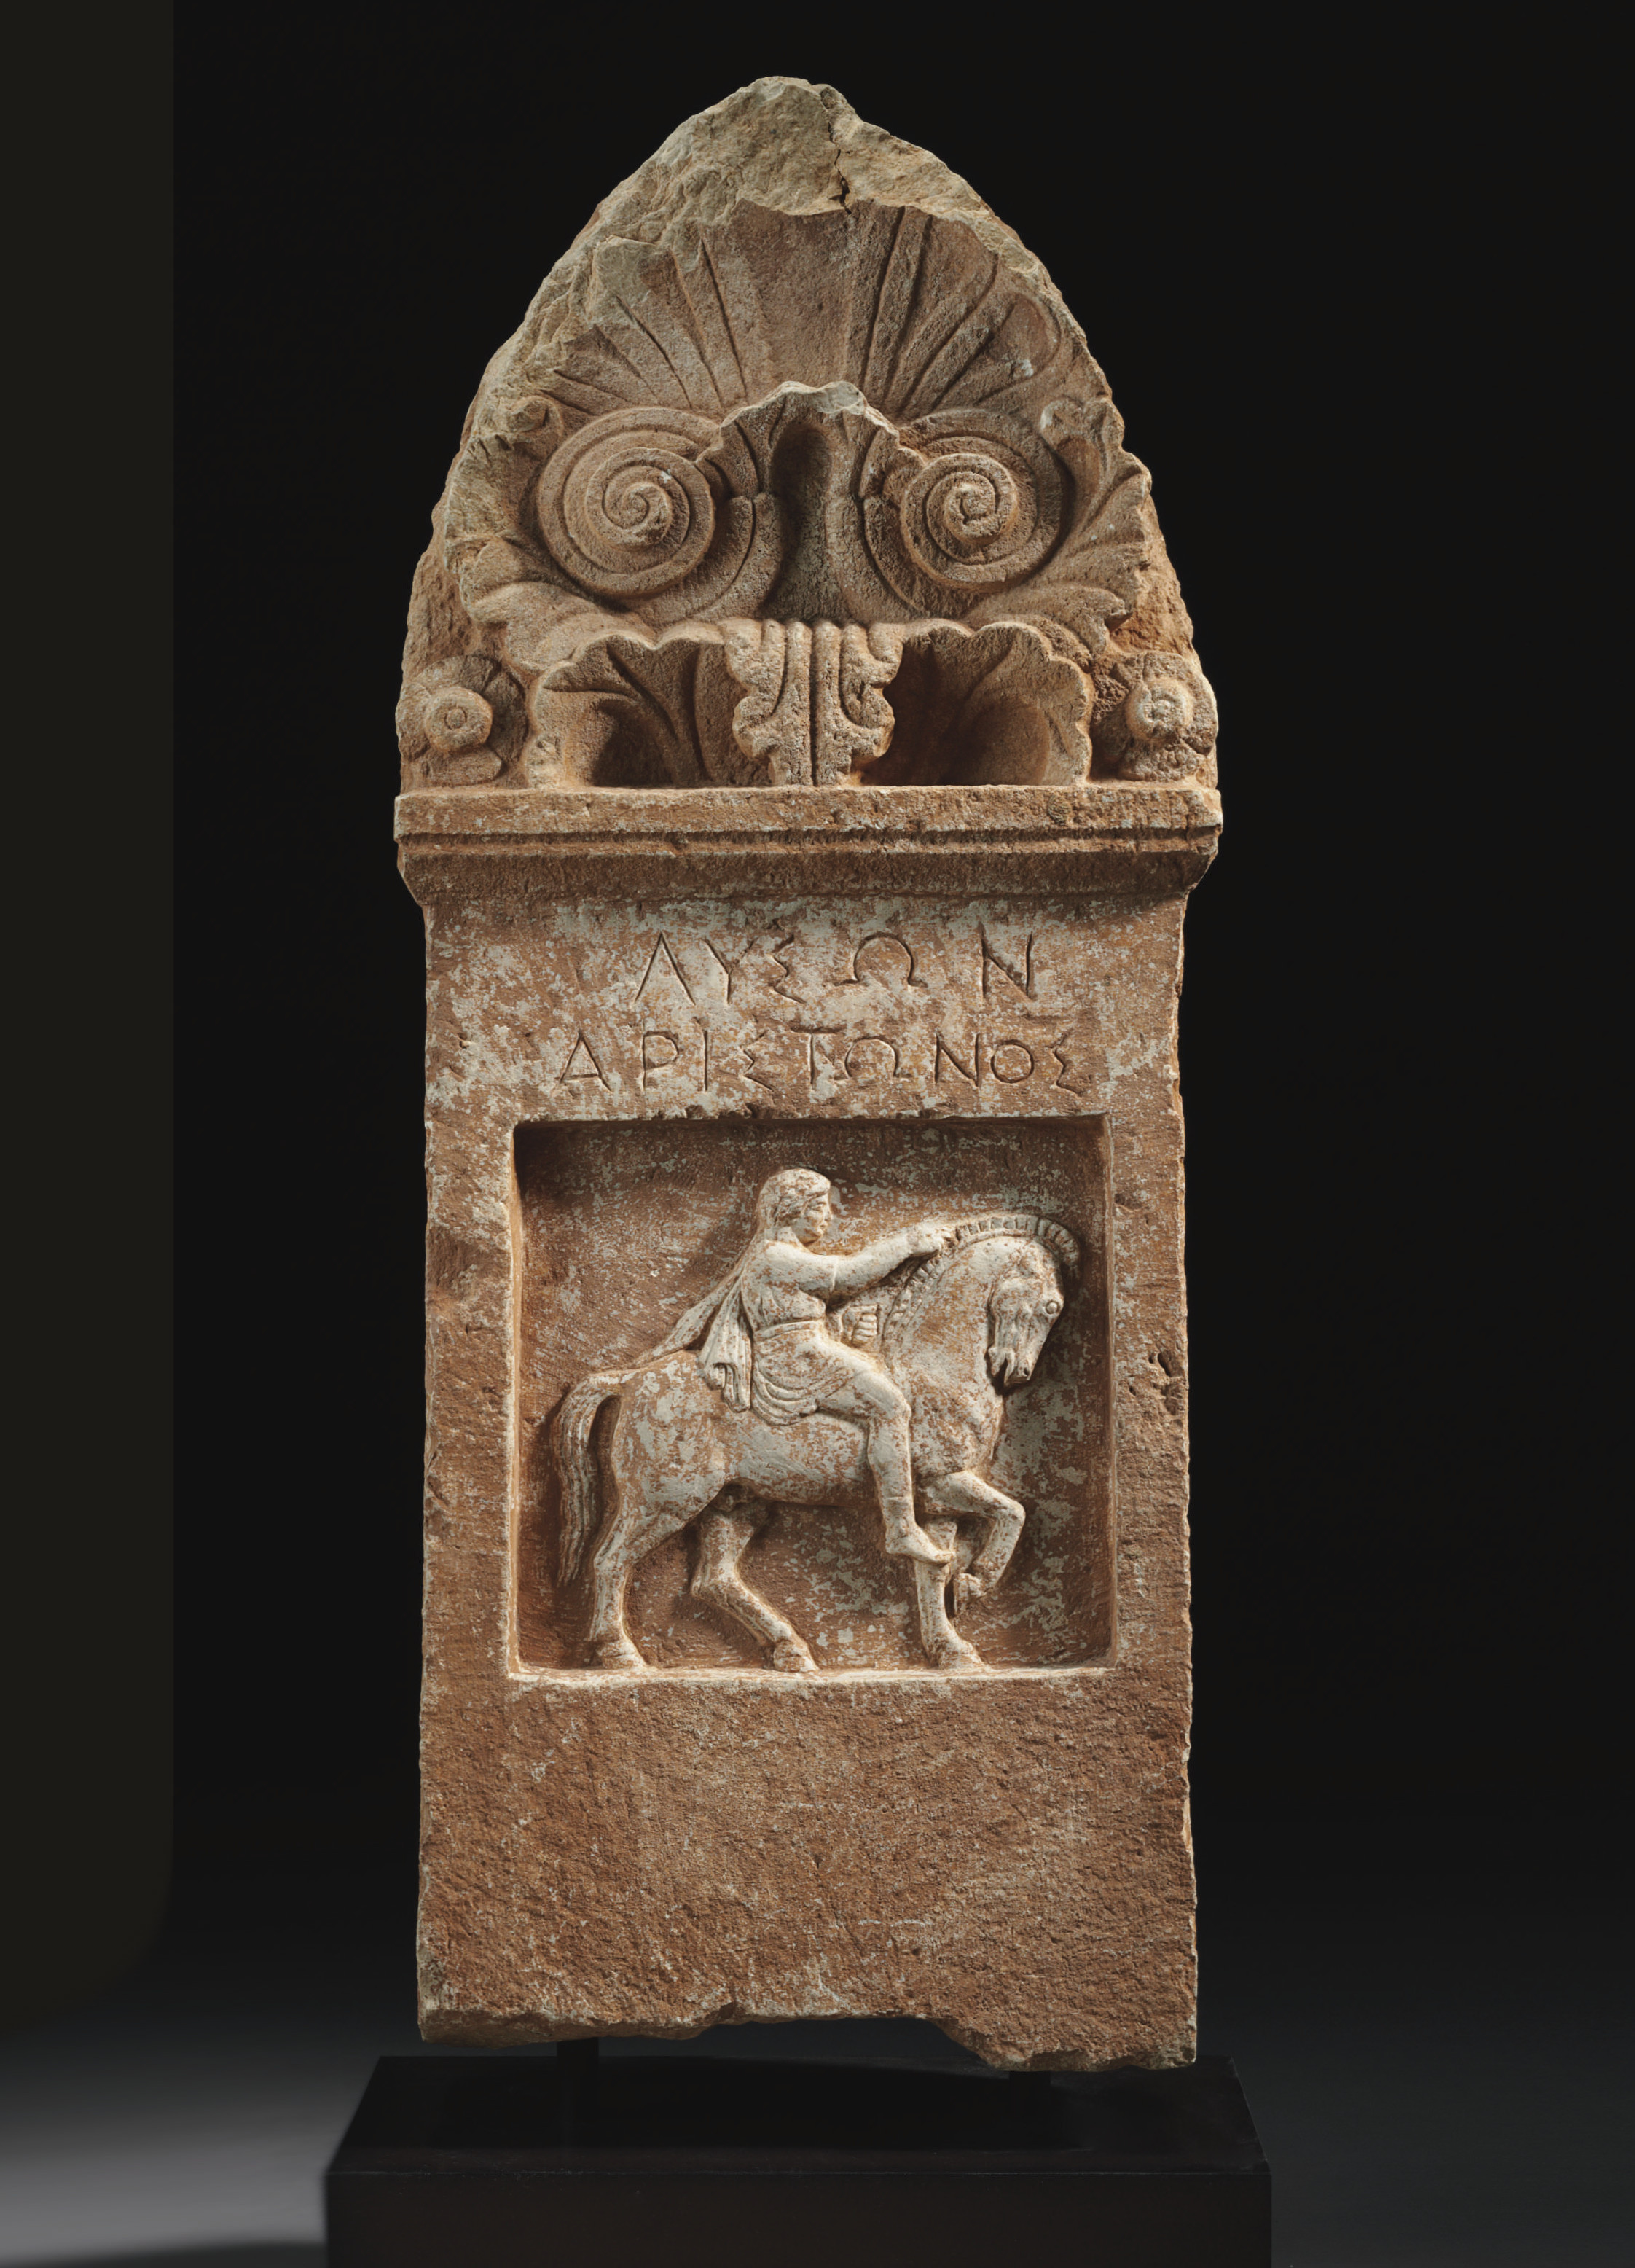 A GREEK MARBLE GRAVE STELE FOR